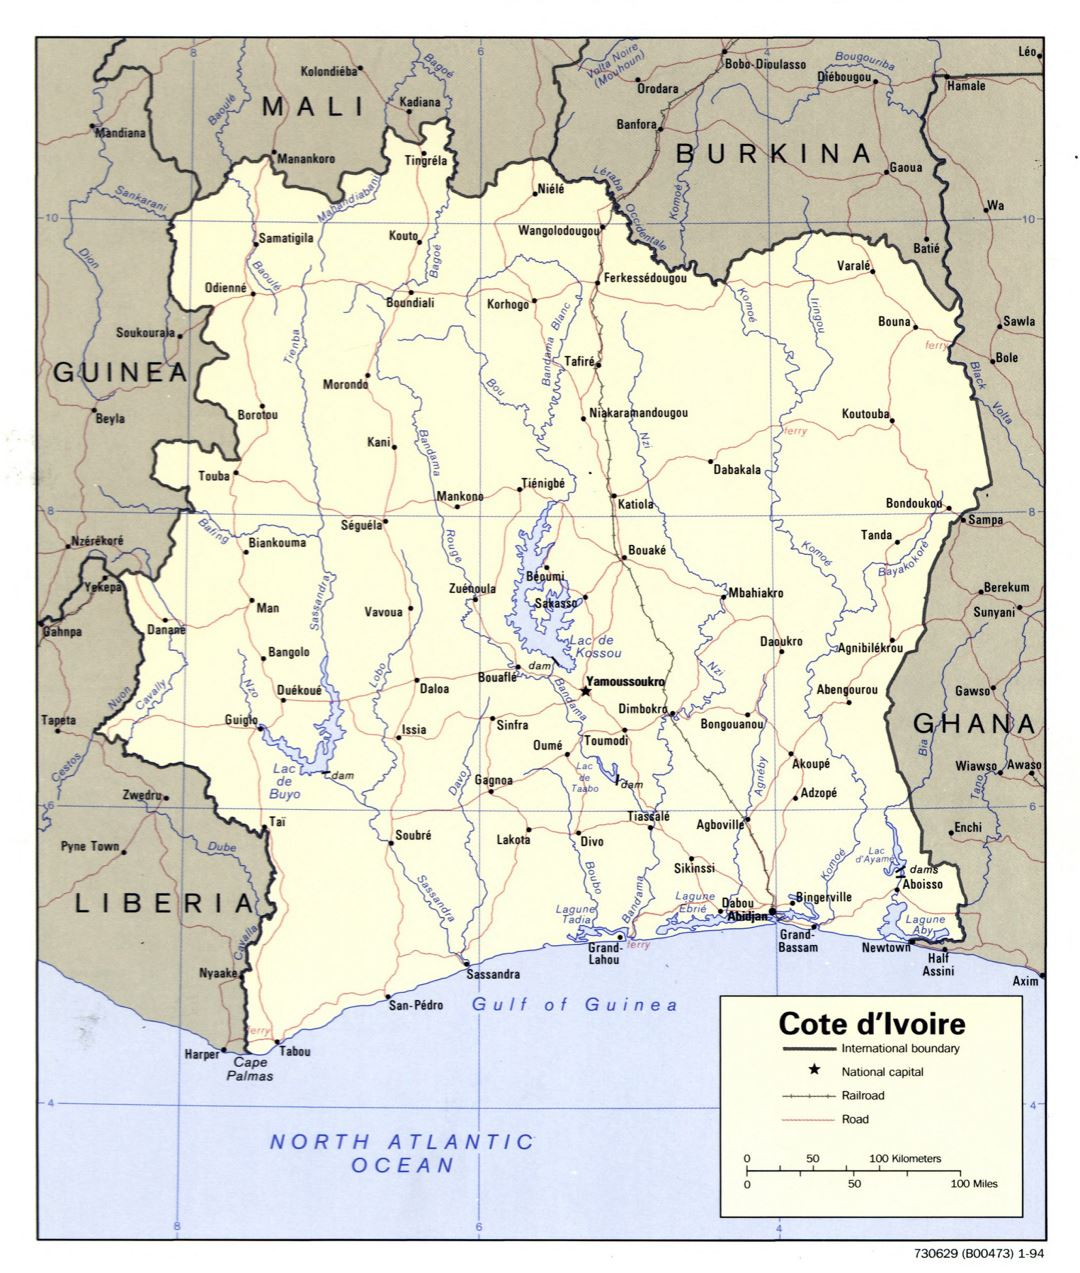 Large scale political map of Cote d'Ivoire with roads, railroads and major cities - 1994